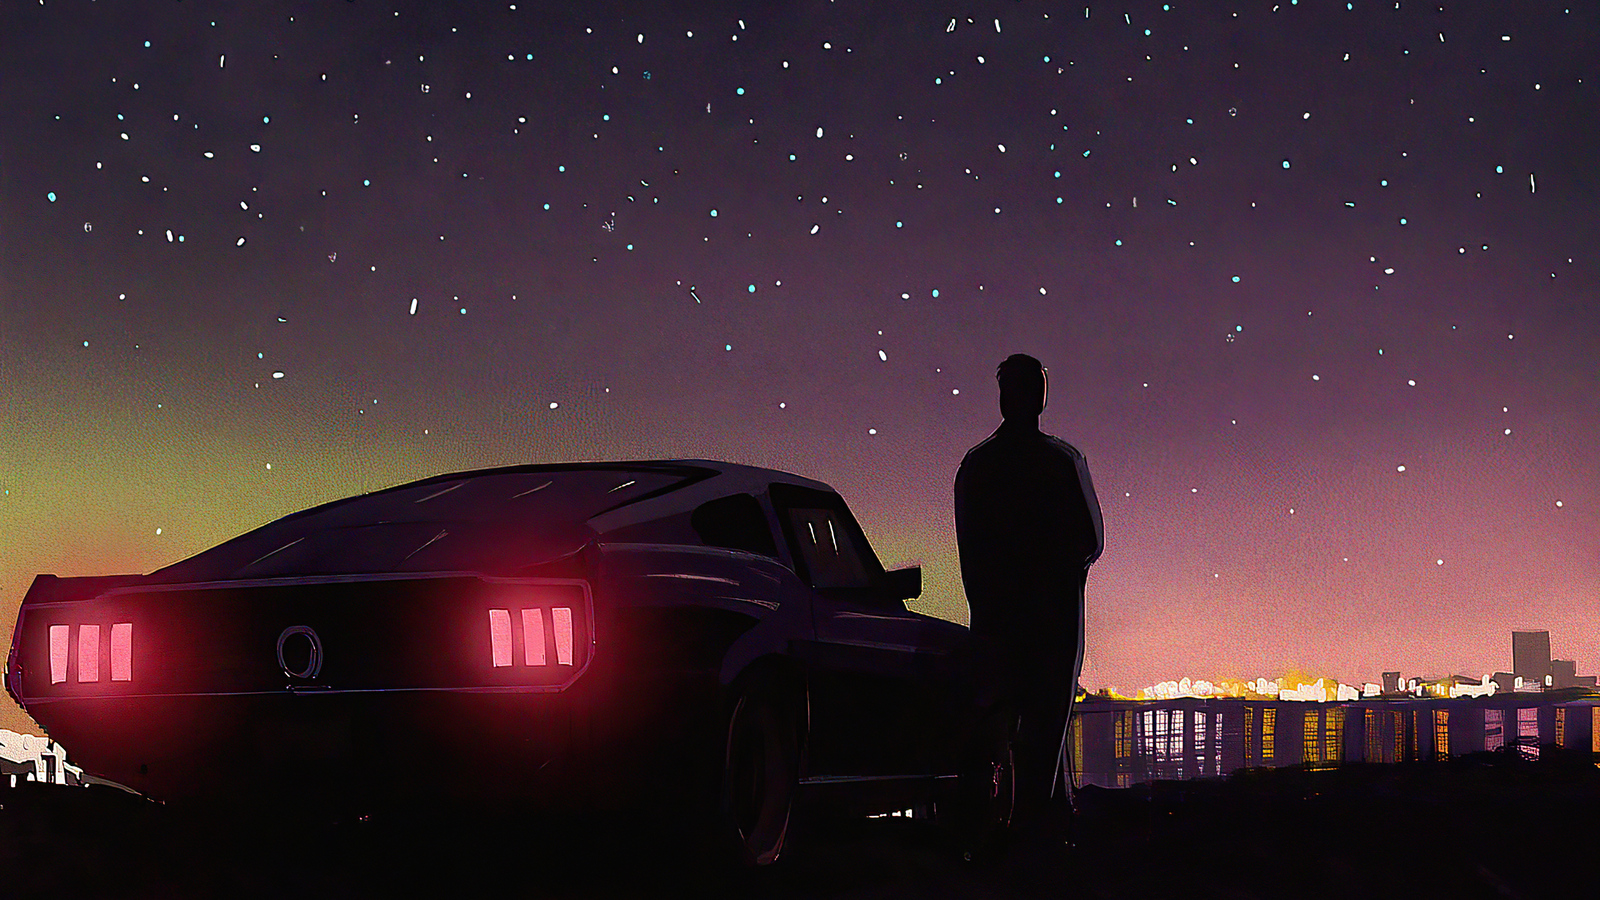 retrowave-nights-with-ford-mustang-4k-mj.jpg